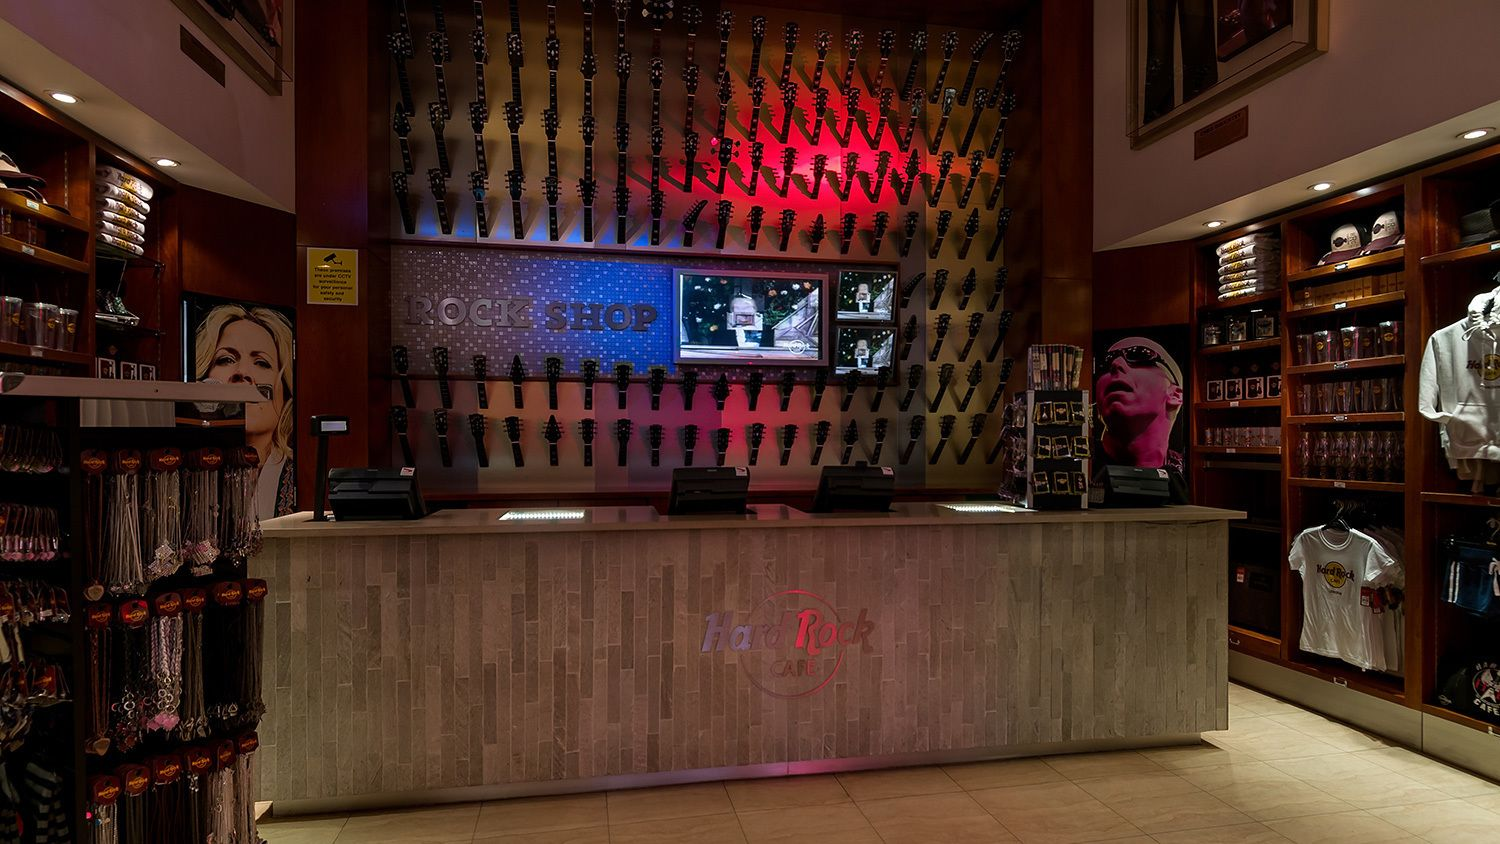 gift shop of Hard Rock Cafe in London